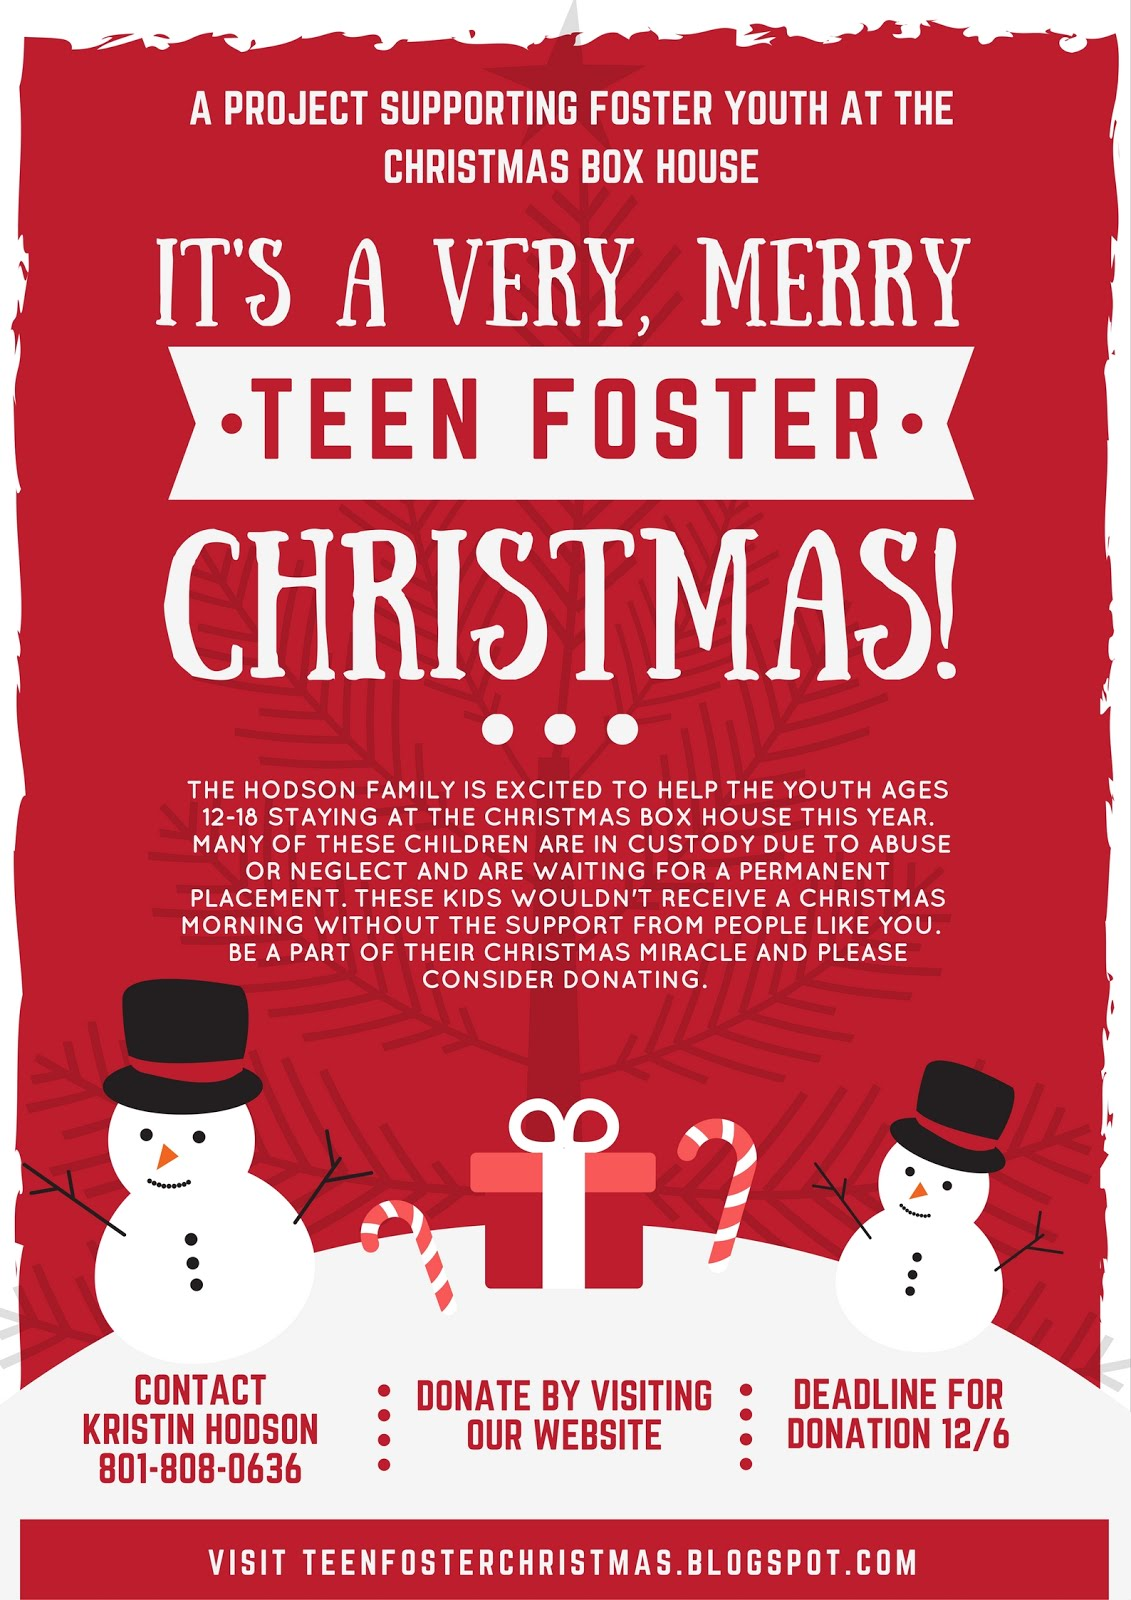 It's a Very, Merry Teen Foster Christmas